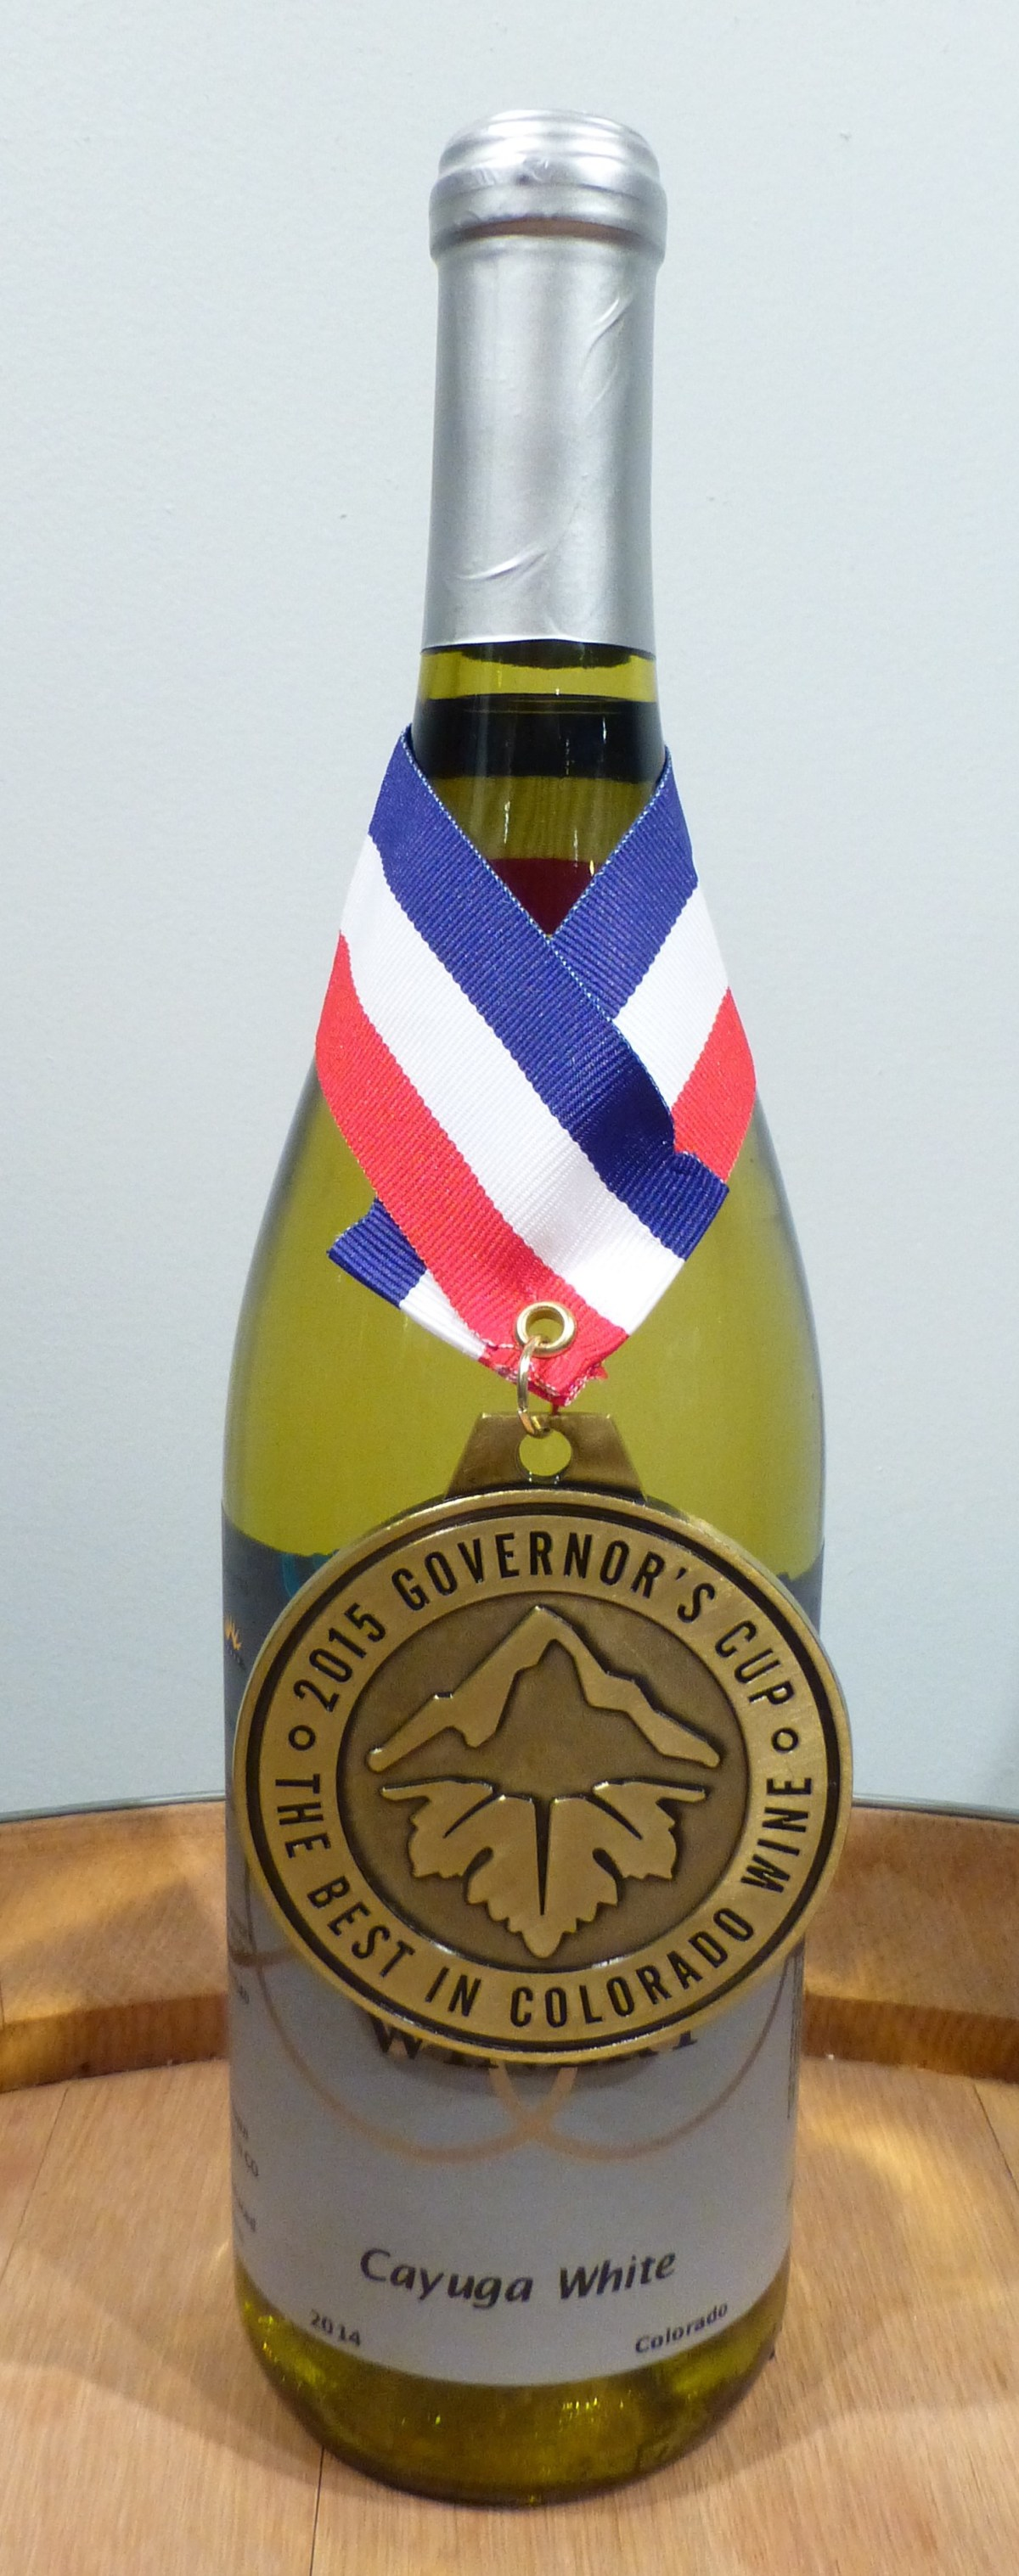 Cayuga White 2015 Governors Cup Best in Colorado Wine winner